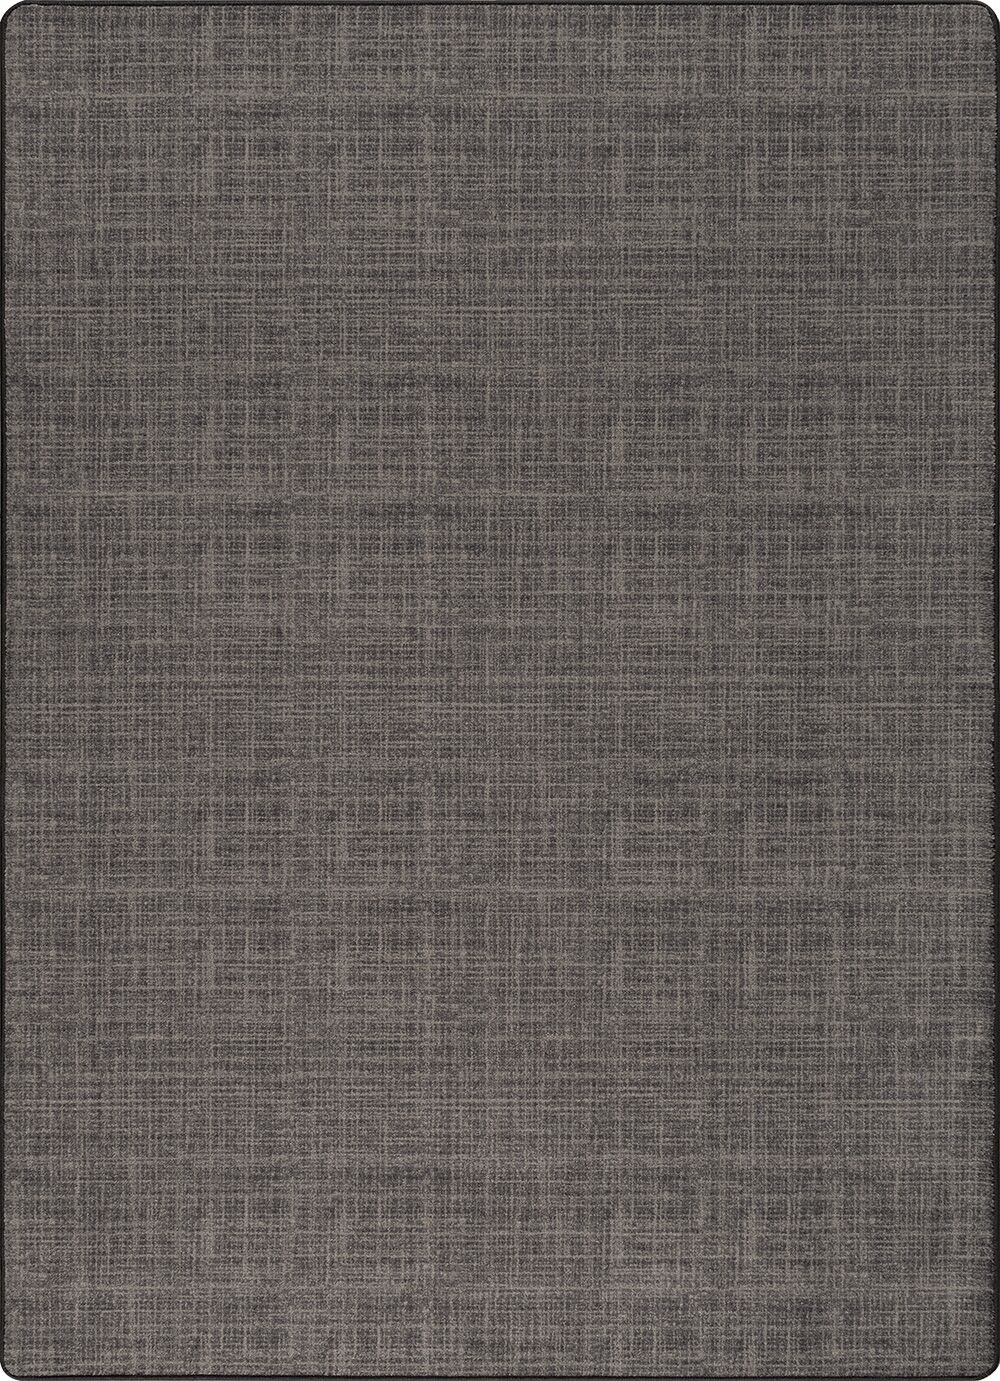 Risborough Gray Area Rug Rug Size: Rectangle 3'10